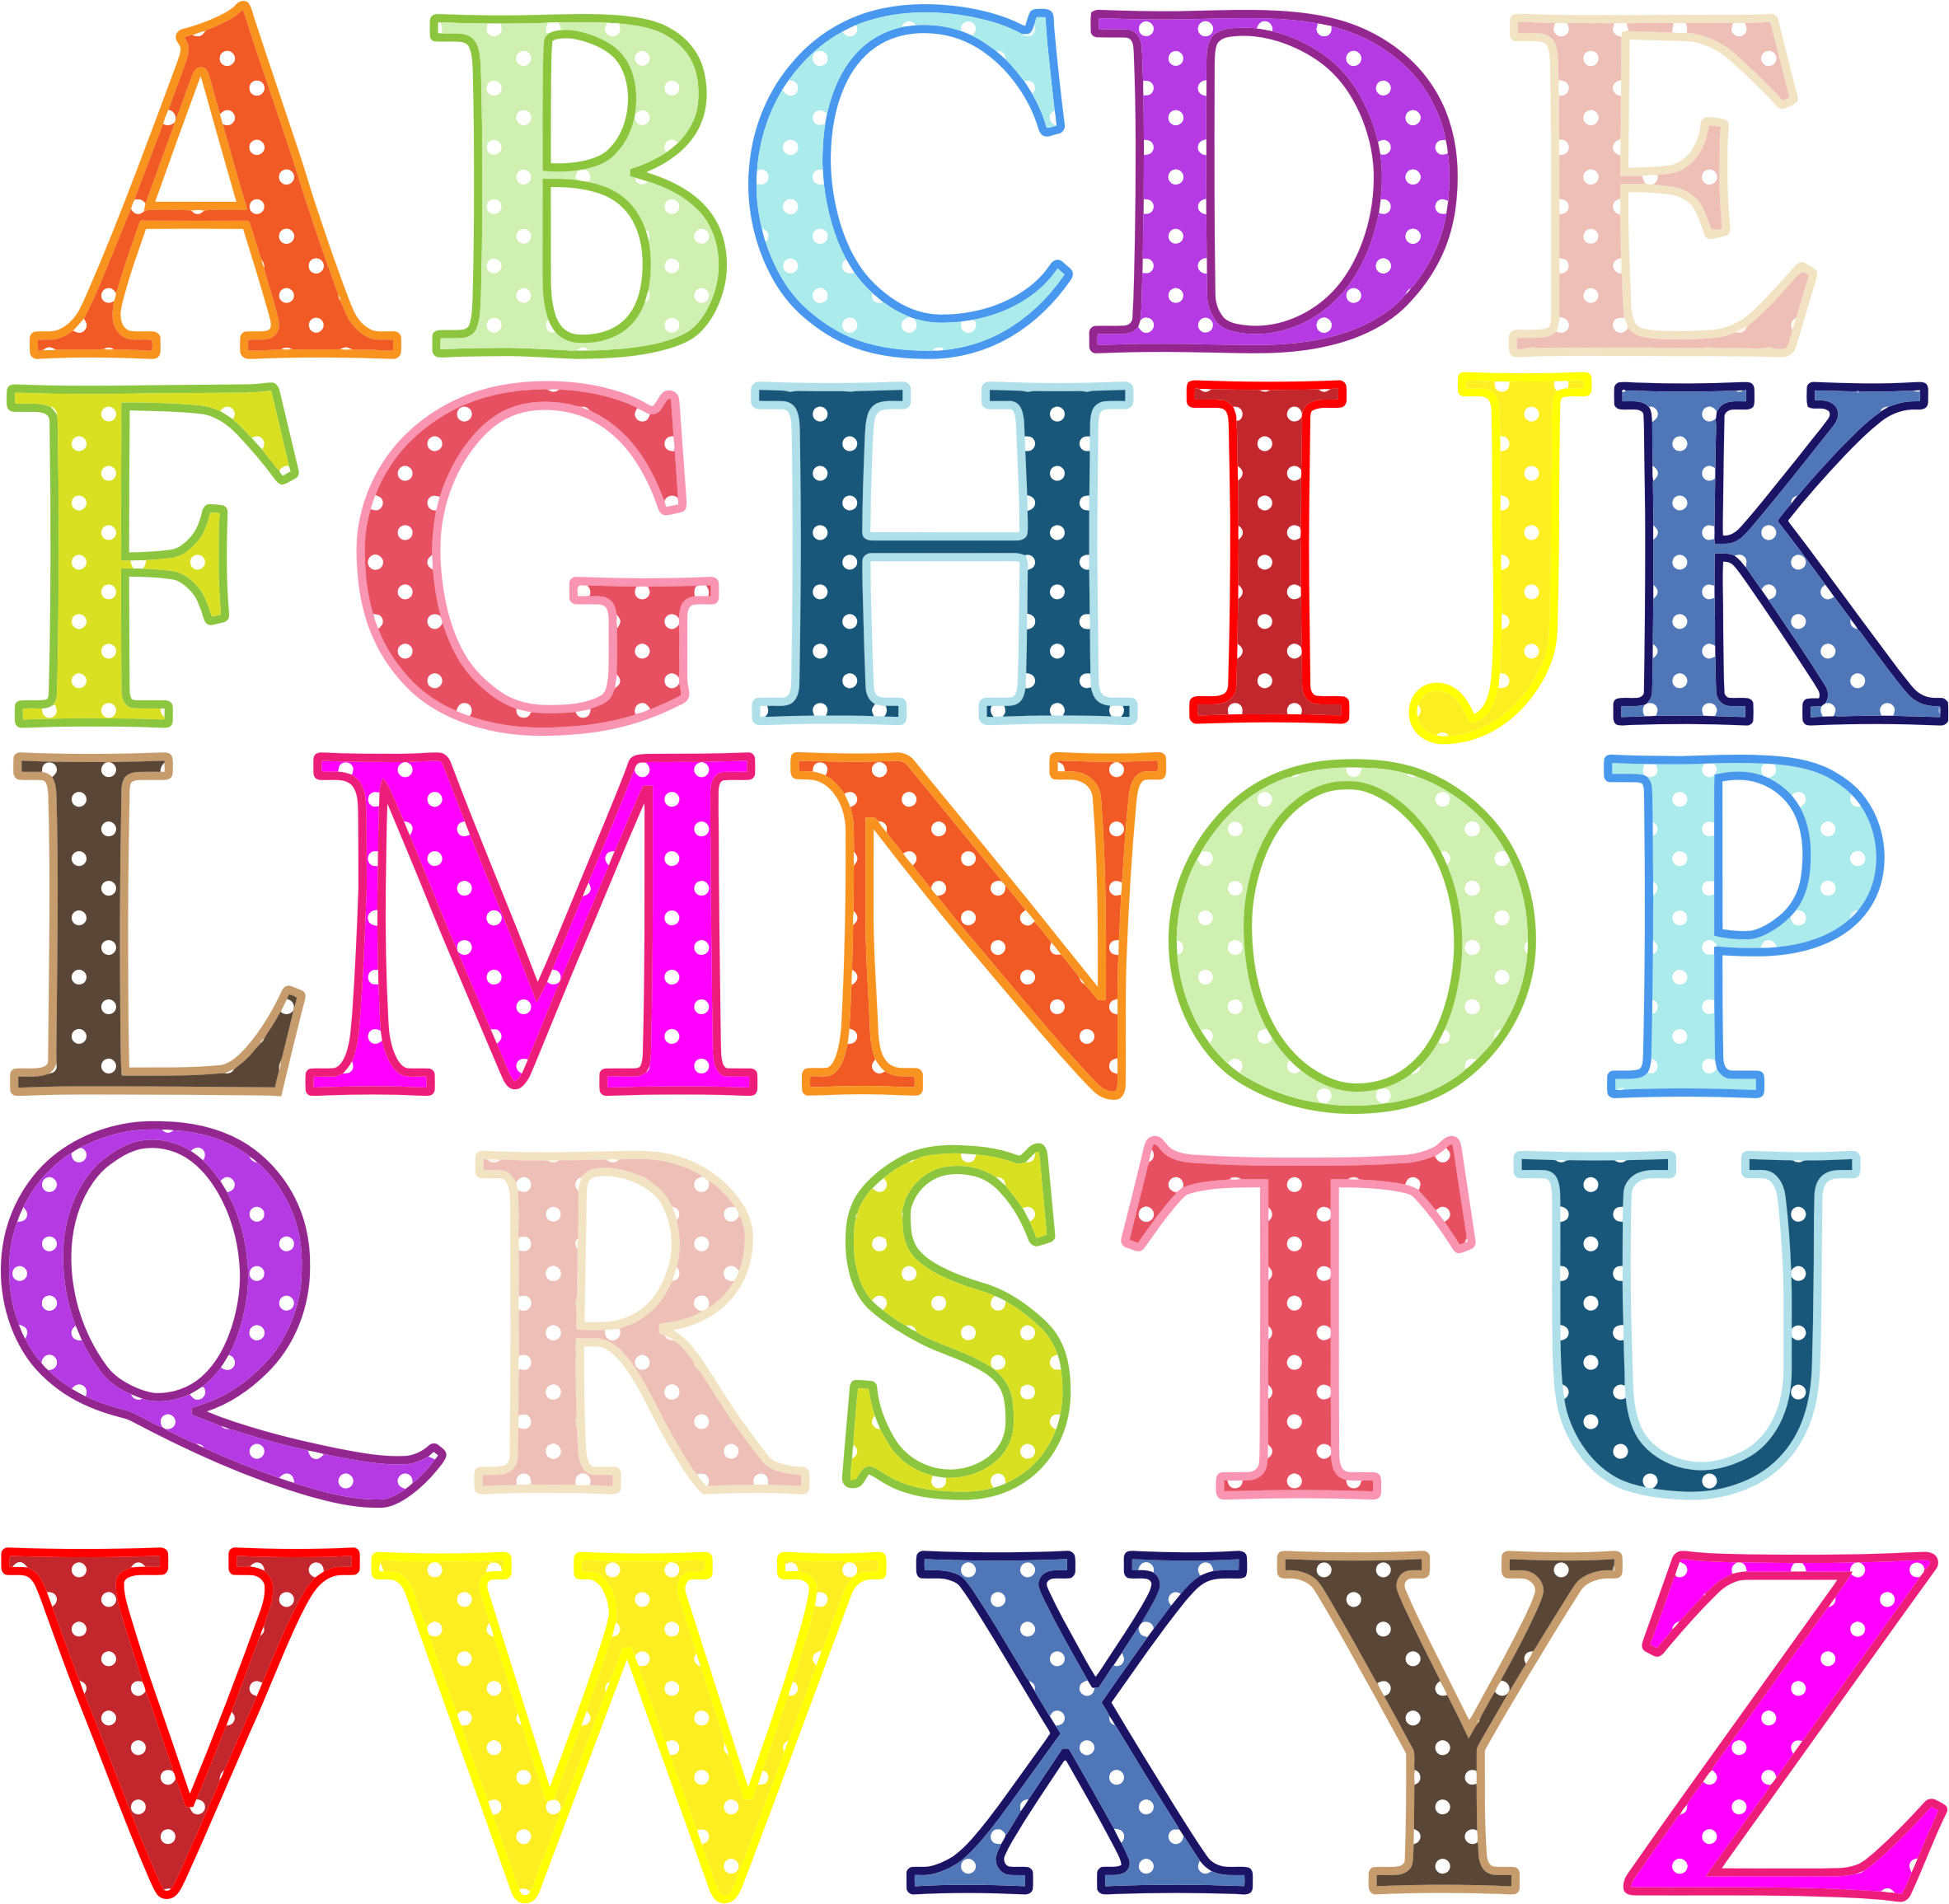 Lowercase letter clipart clipart free download Alphabet | Clipart - Colorful Alphabet Uppercase | ❖Fonts ... clipart free download